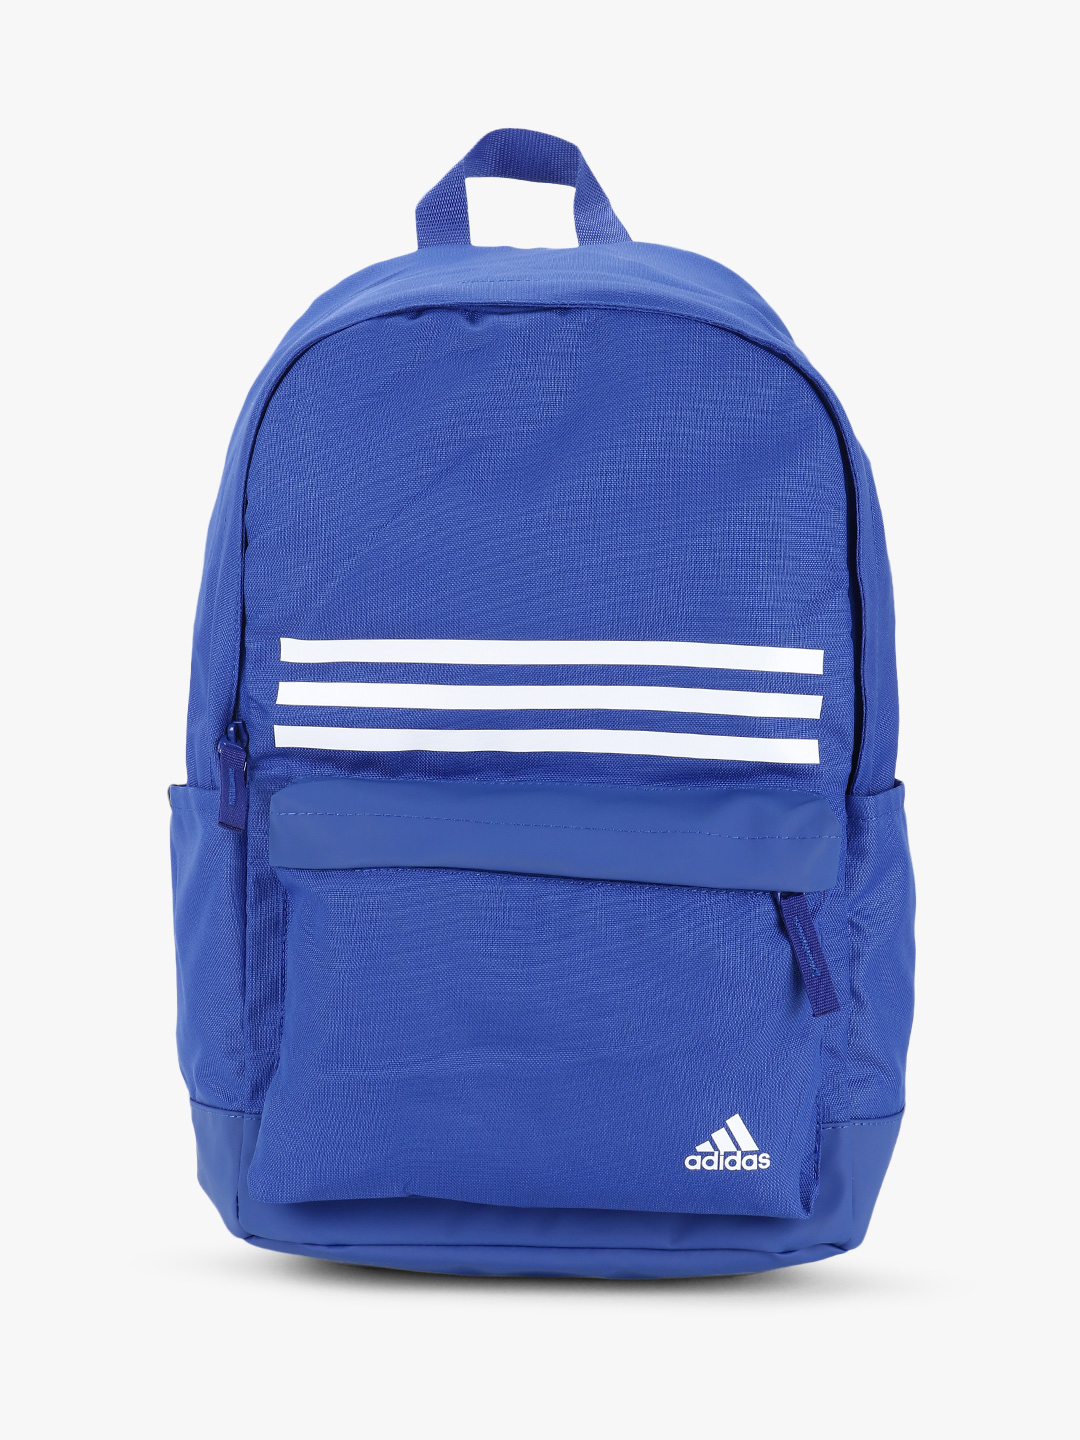 Adidas Multi Classic 3 Stripes Pocket Backpack 1